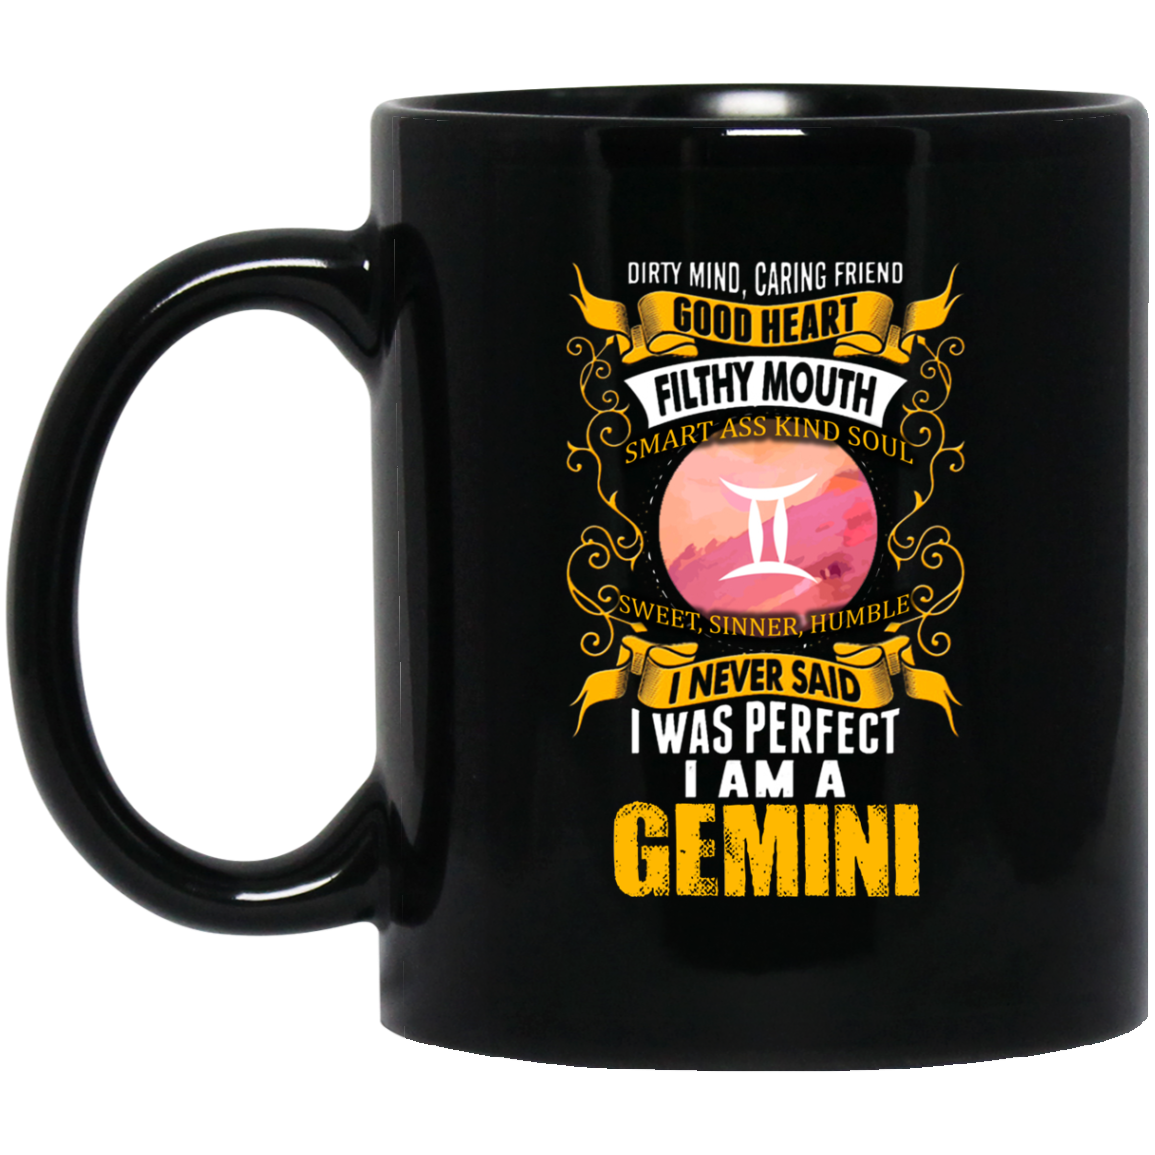 Gemini Zodiac Mug I Am A Gemini With Dirty Mind Good Heart Mug